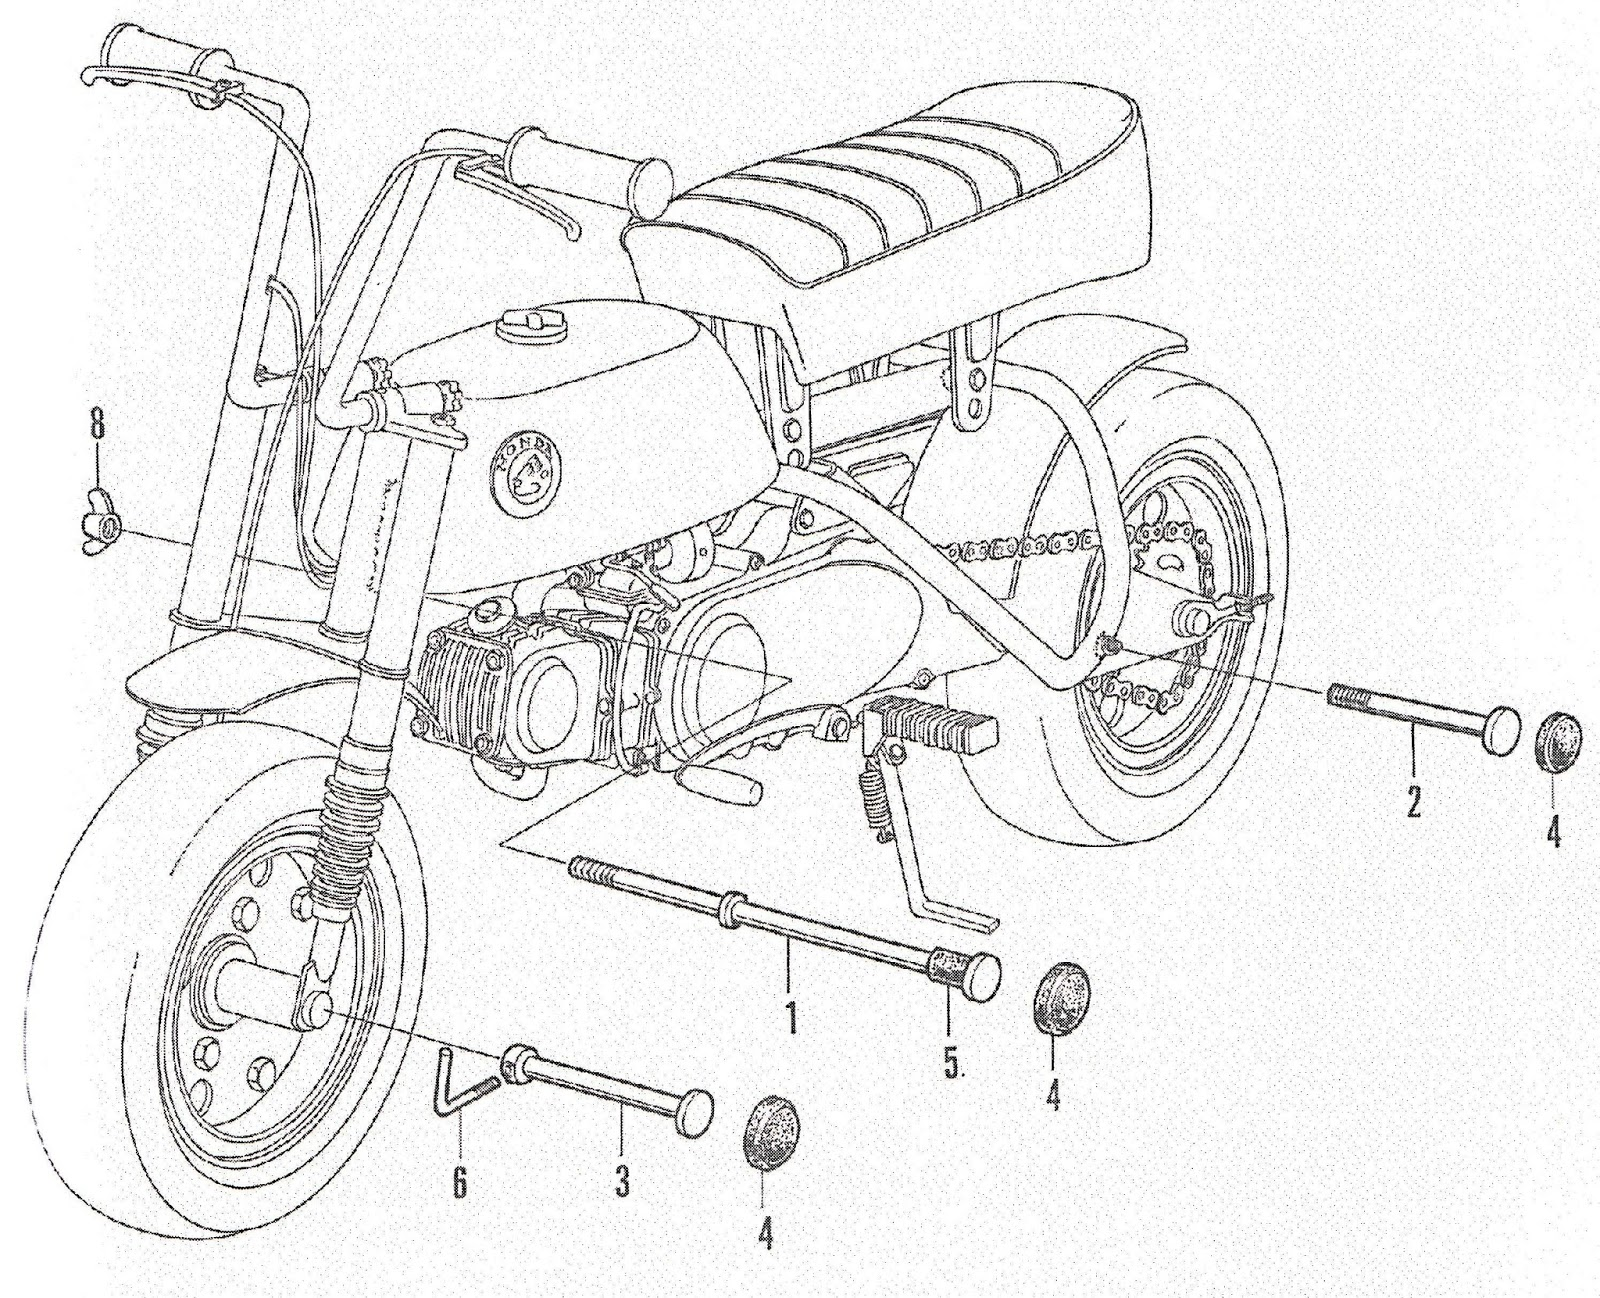 Z50 A Mini Trail Restoration Project Honda Bicycle Anatomy Diagram Please Note That There Are Some Parts No Longer Available Made By For And Sometimes You Just Need To Spend Lot Of Time Checking Out The